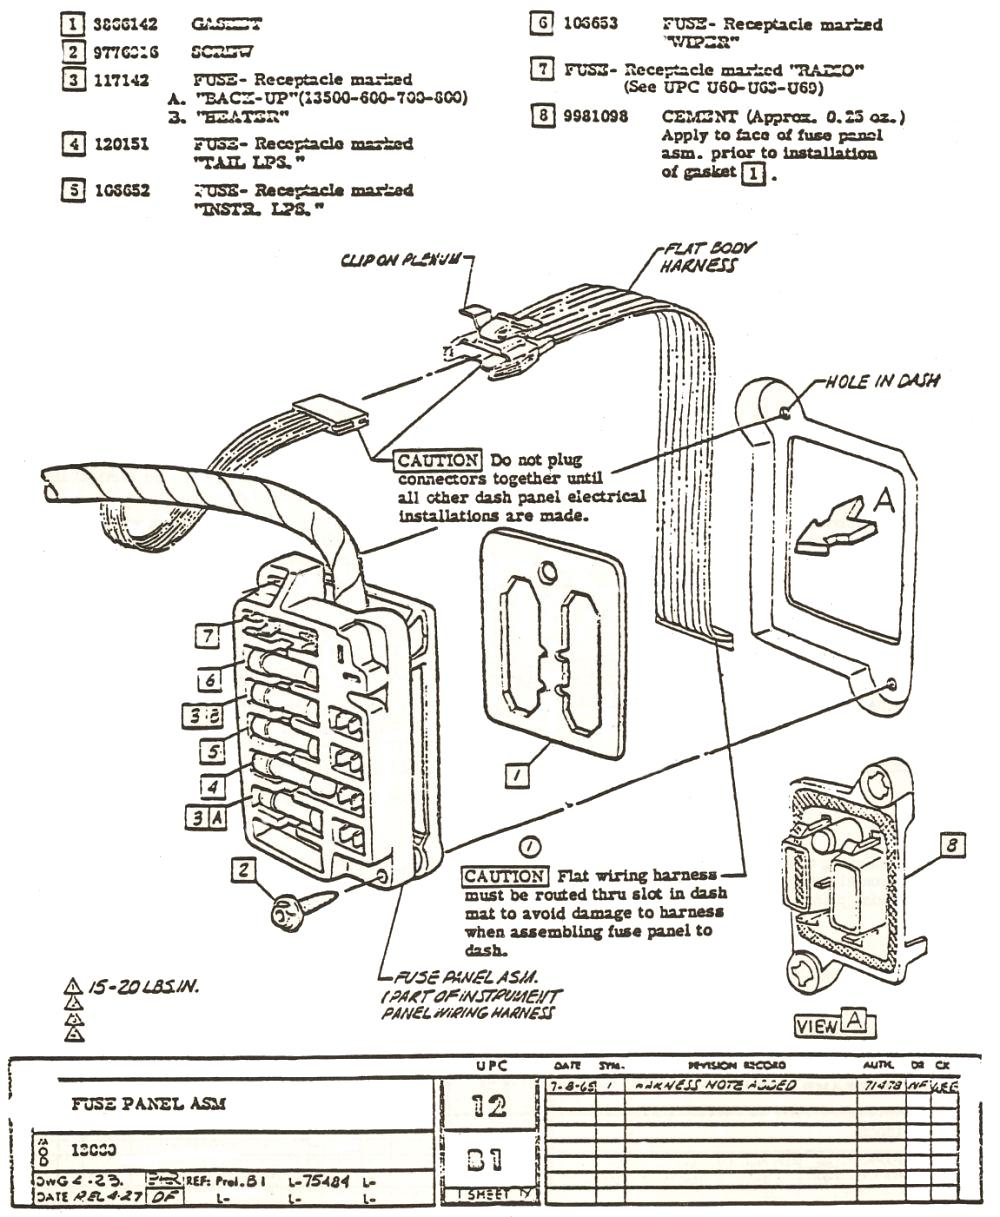 1971 Chevelle Fuse Box Diagram Wiring Diagrams 69 Harness Manual Headlights